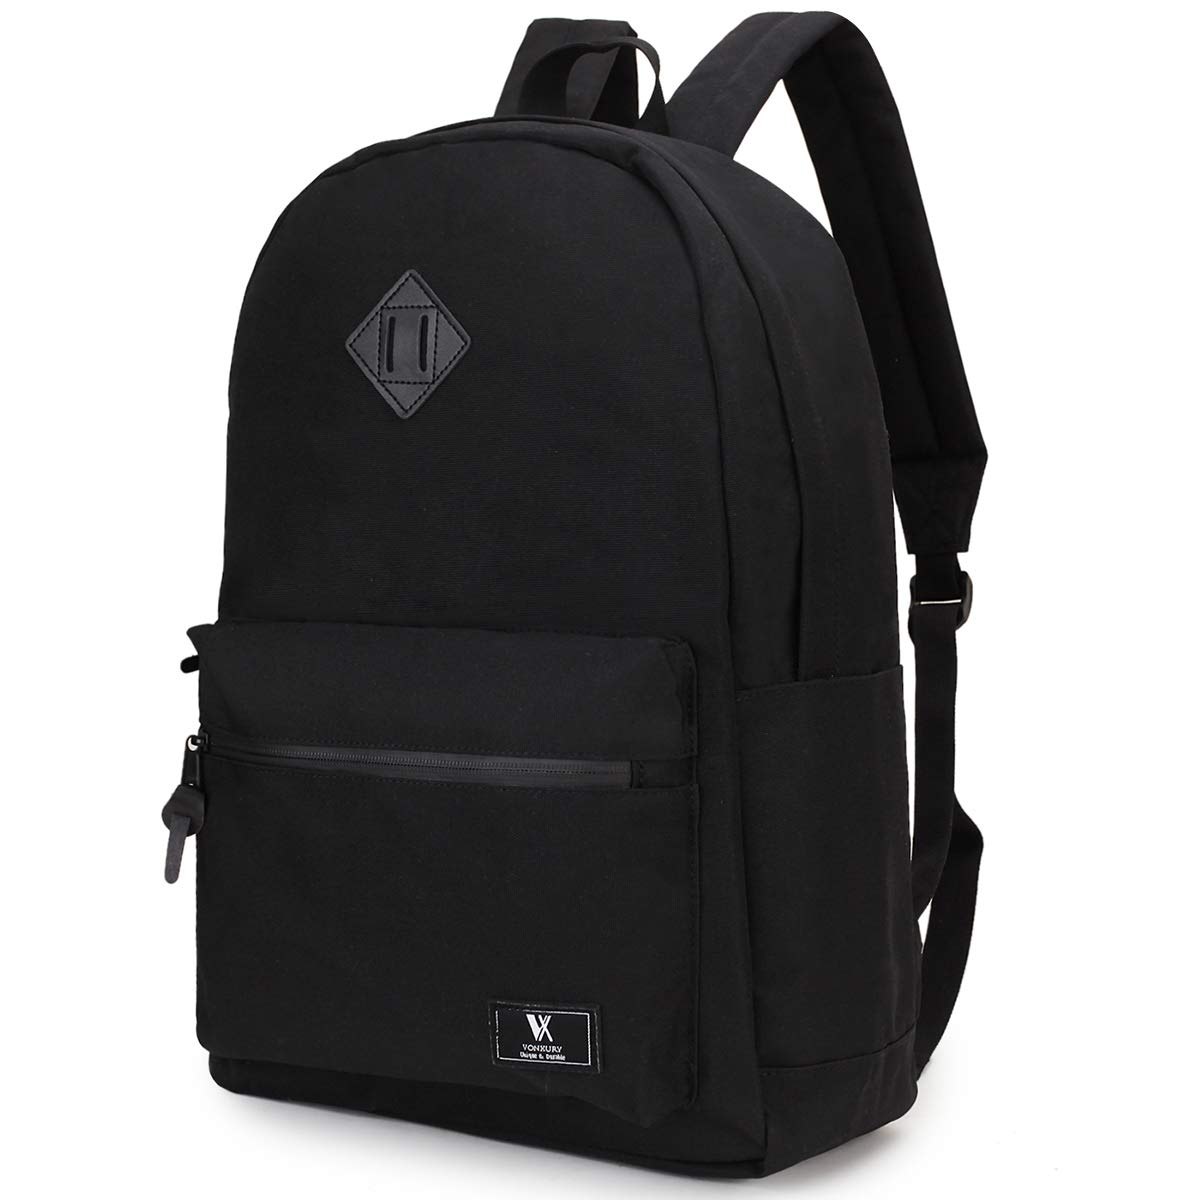 School Backpack, Unisex 15.6 In Laptop Backpack Boy Travel Daypack,Black VONXURY by VX VONXURY